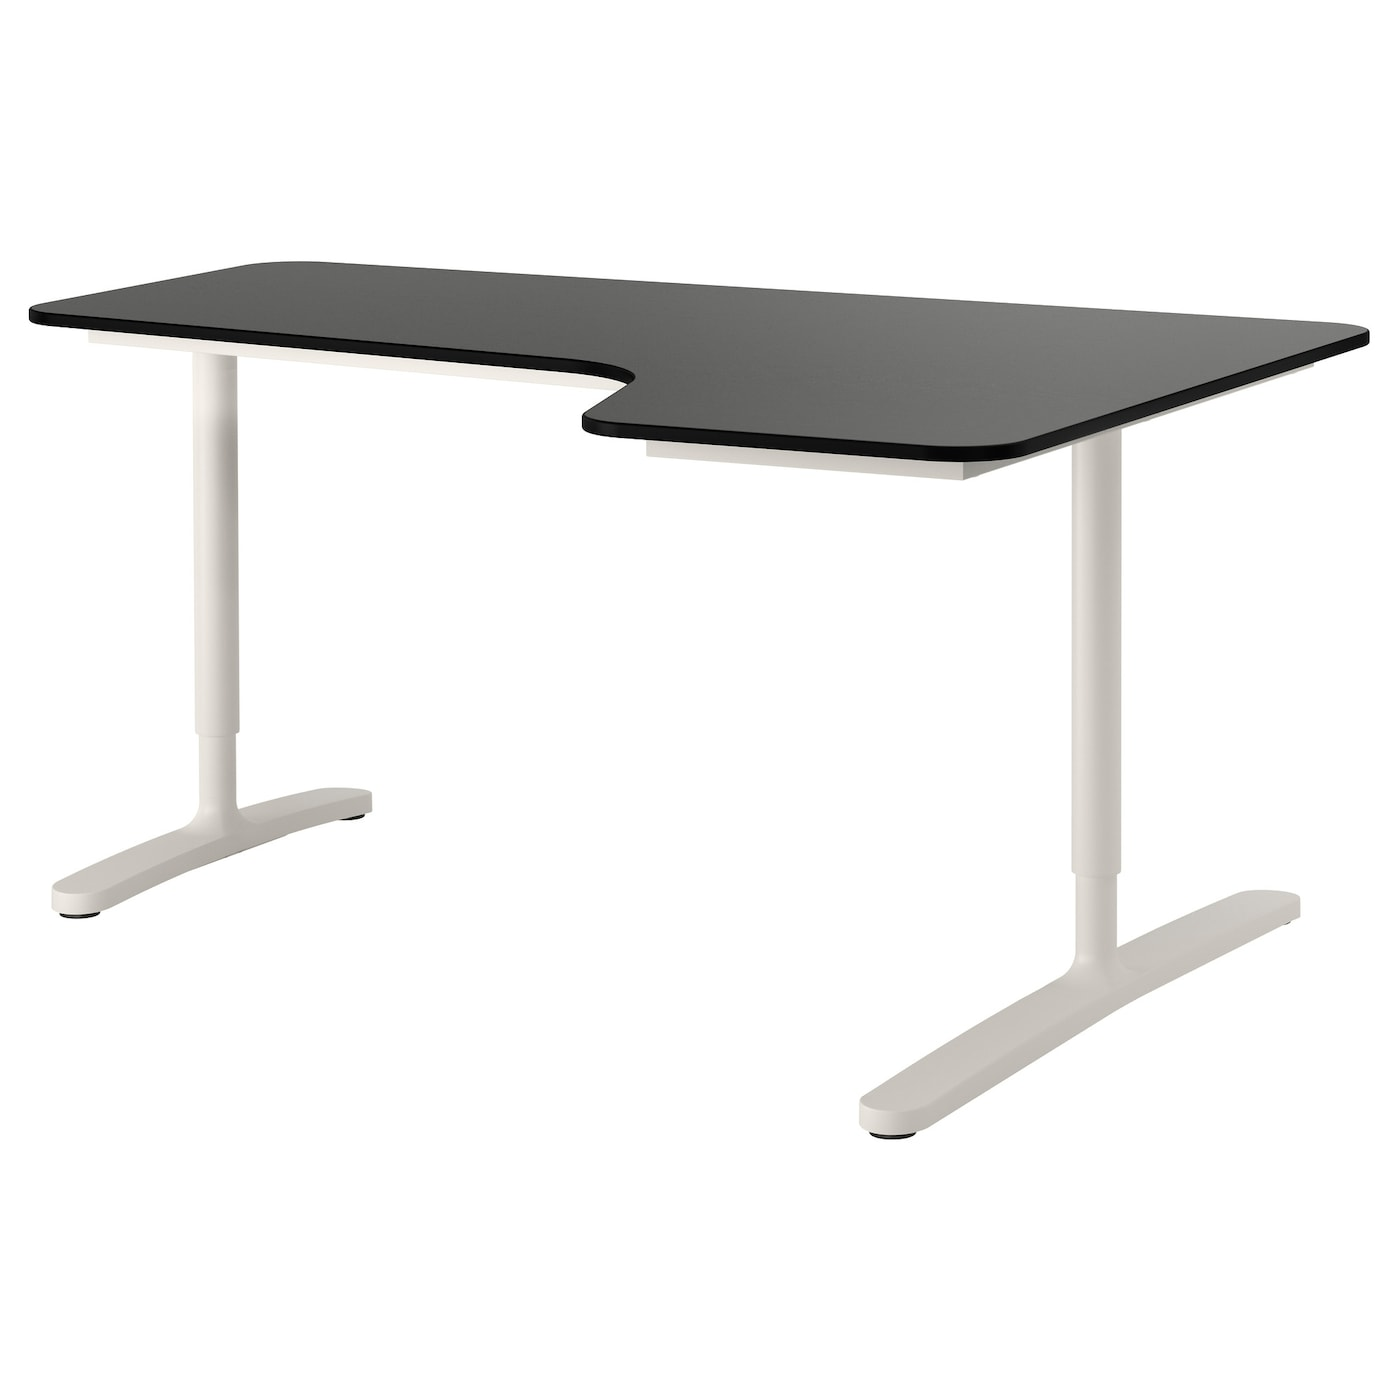 ikea office desks. IKEA BEKANT Corner Desk Right 10 Year Guarantee. Read About The Terms In Guarantee Ikea Office Desks O